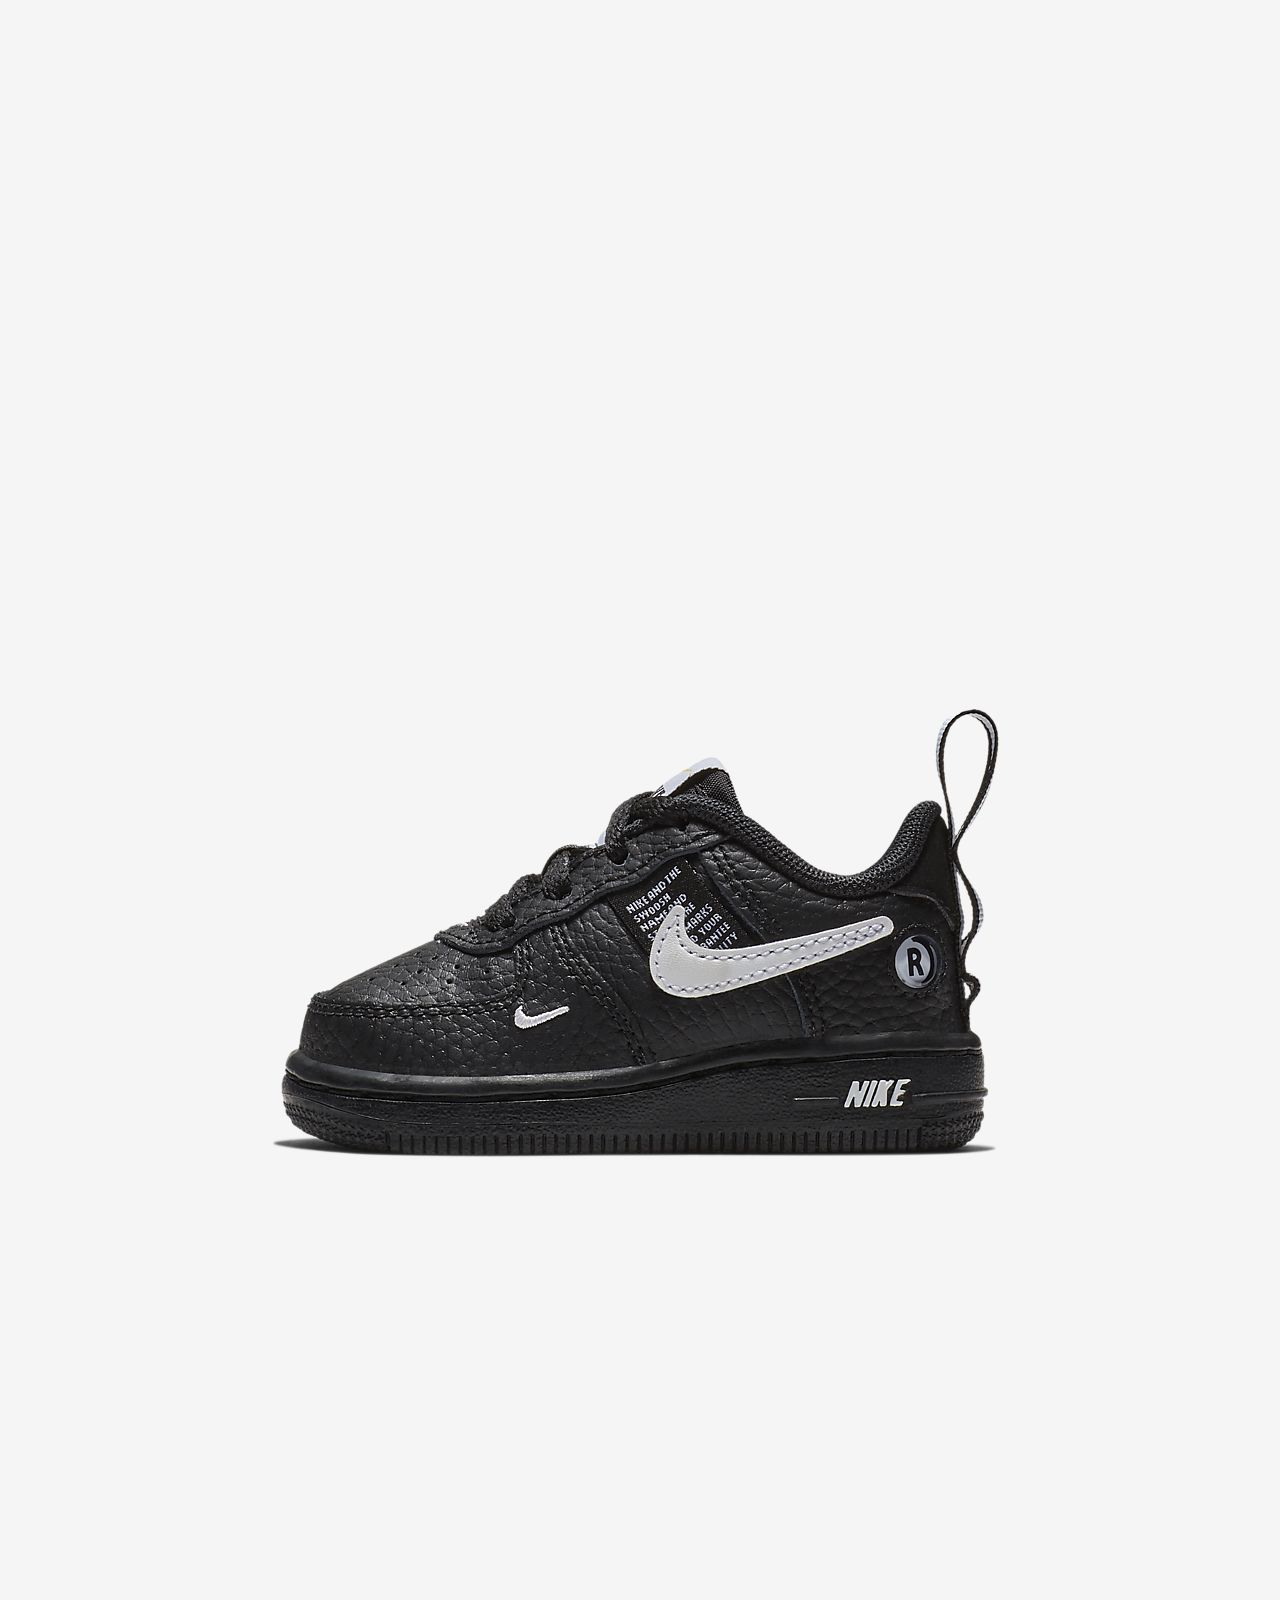 Nike Force 1 LV8 Utility Infant/Toddler Shoe